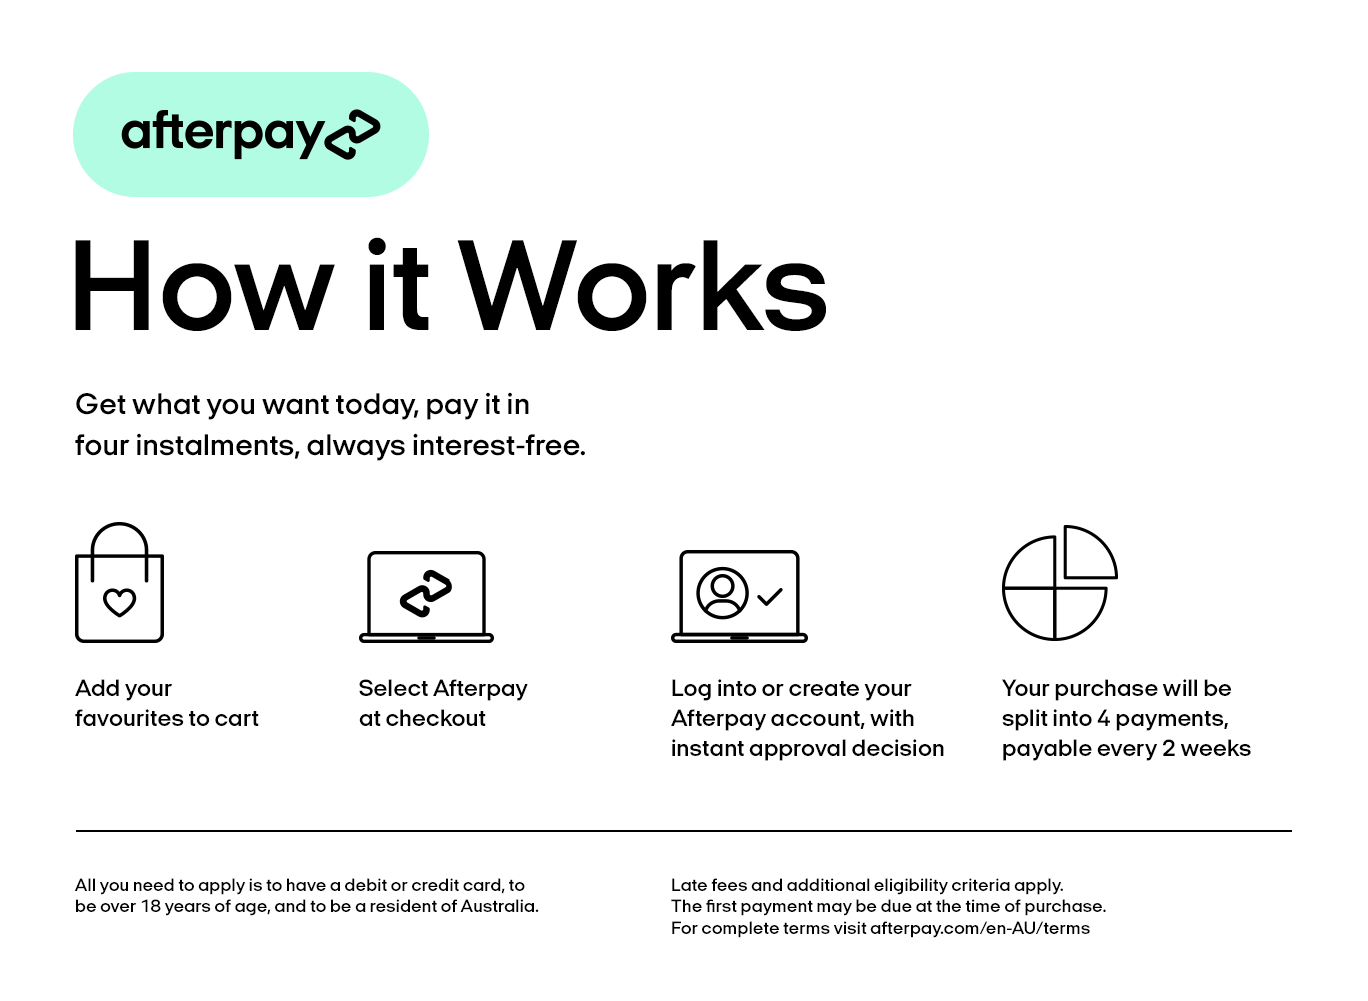 afterpay-au-howitworks-desktop-white-1x.png